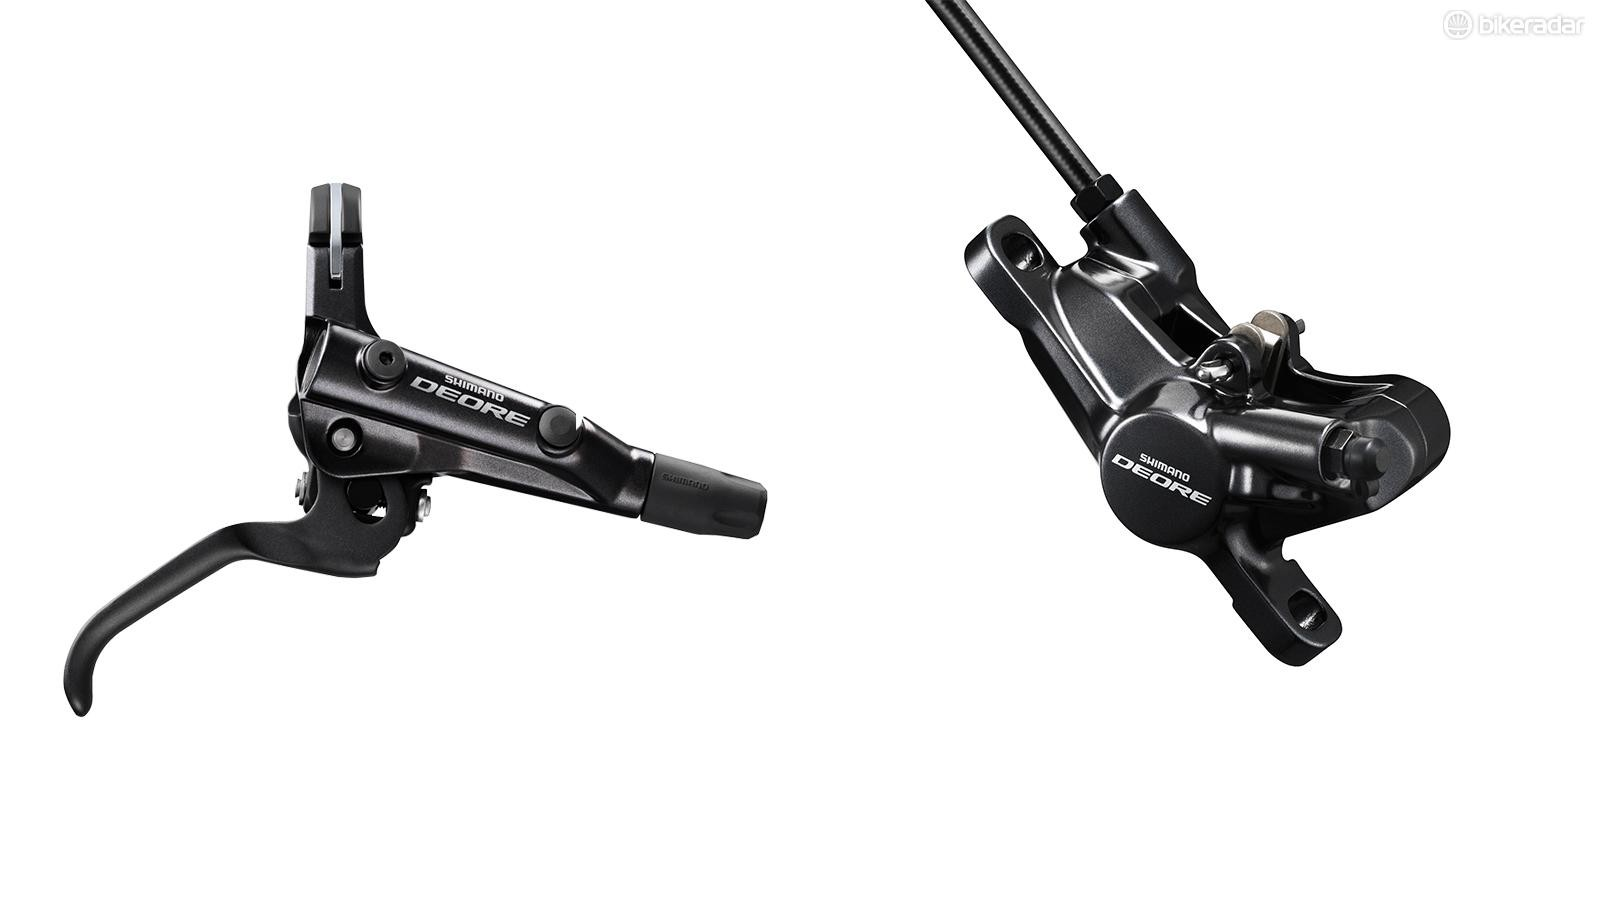 The new Deore brakes look more polished than their predecessors, with slimmer clamps and a new finish